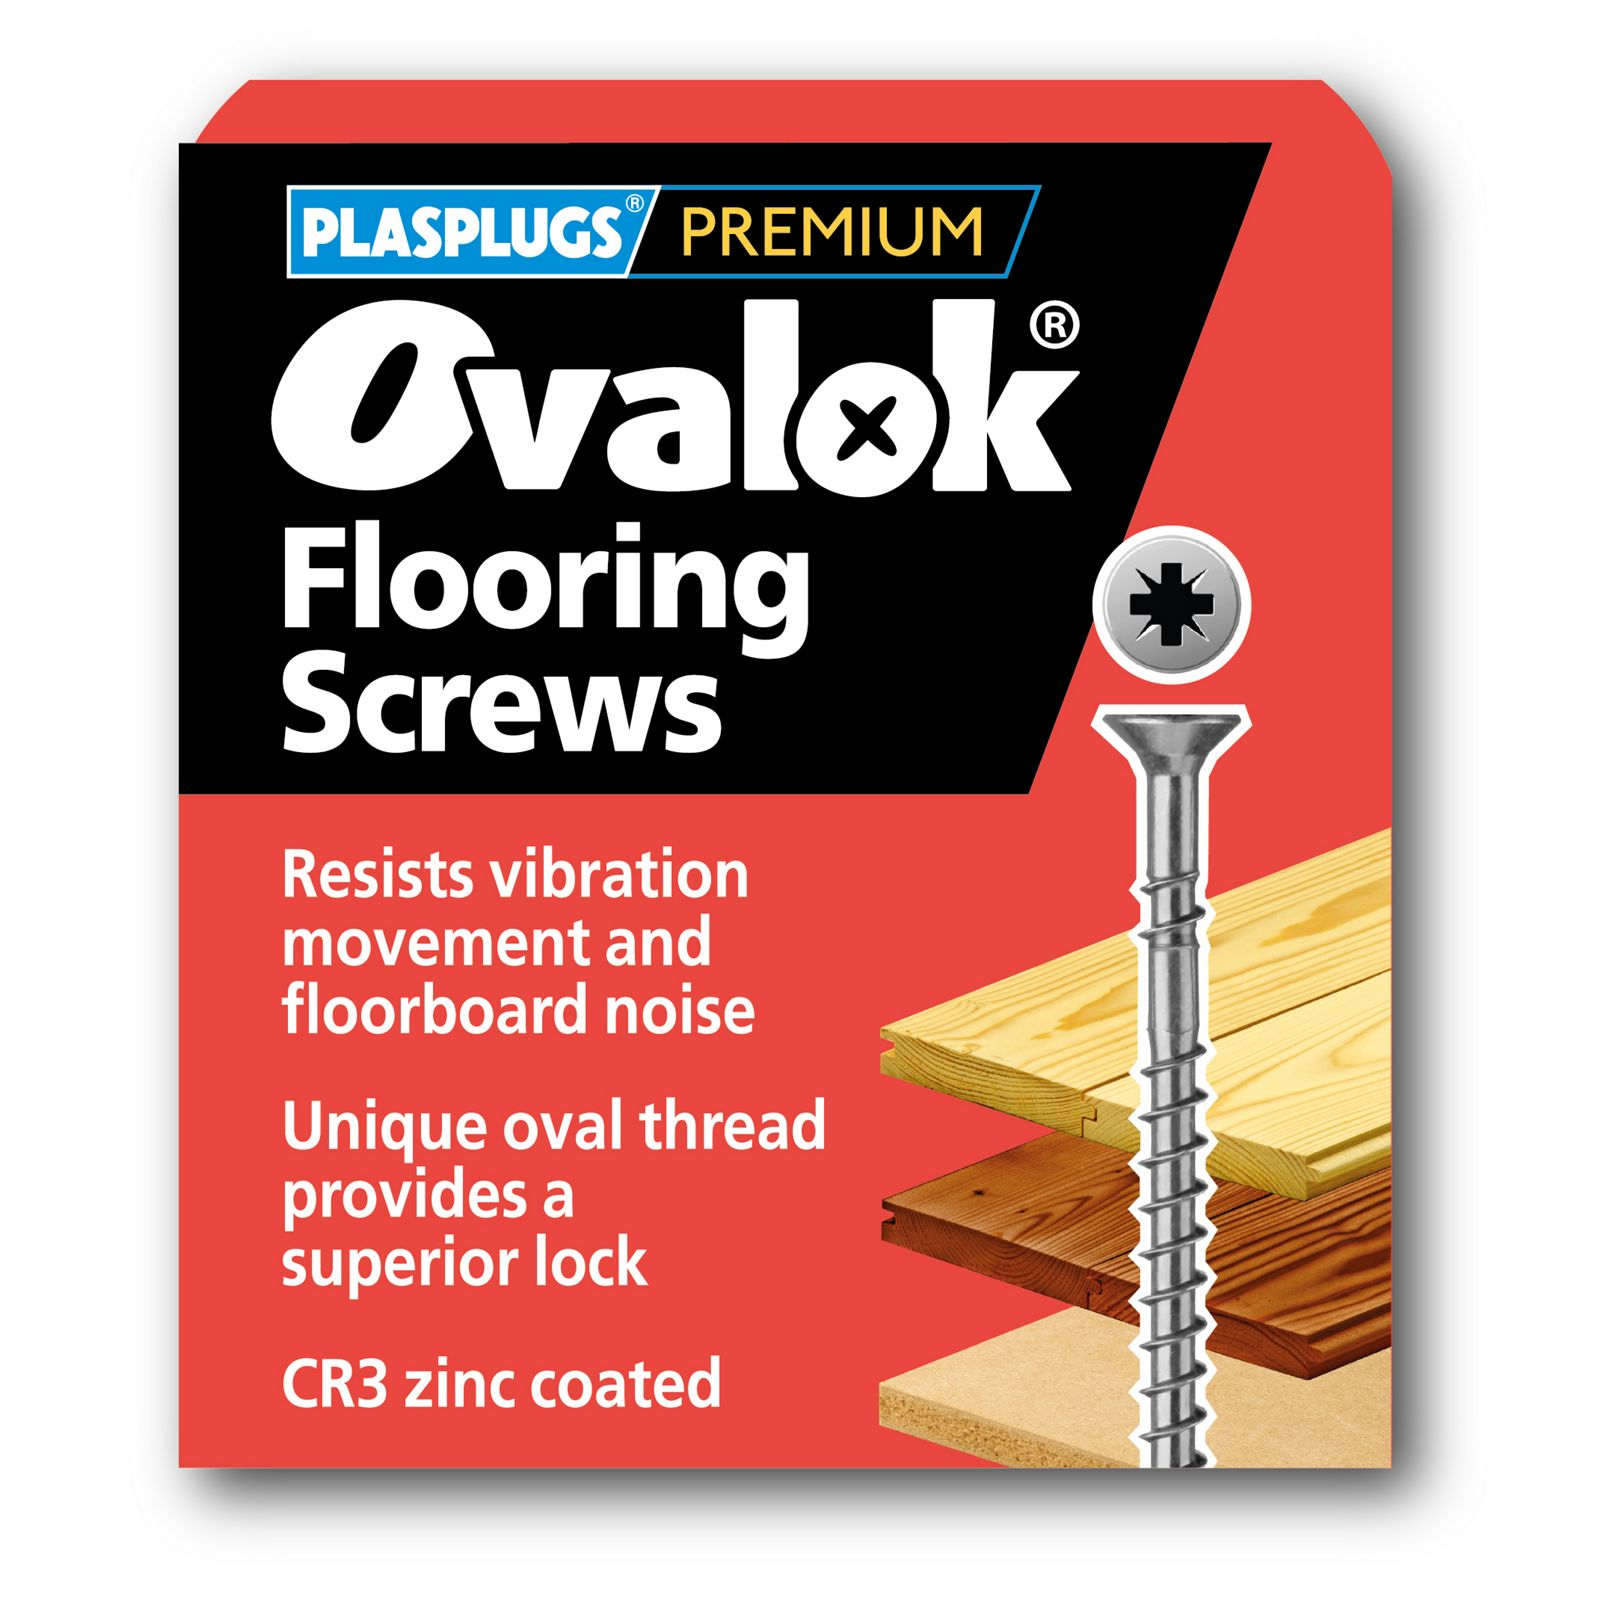 Plasplugs Ovalok Flooring Screws